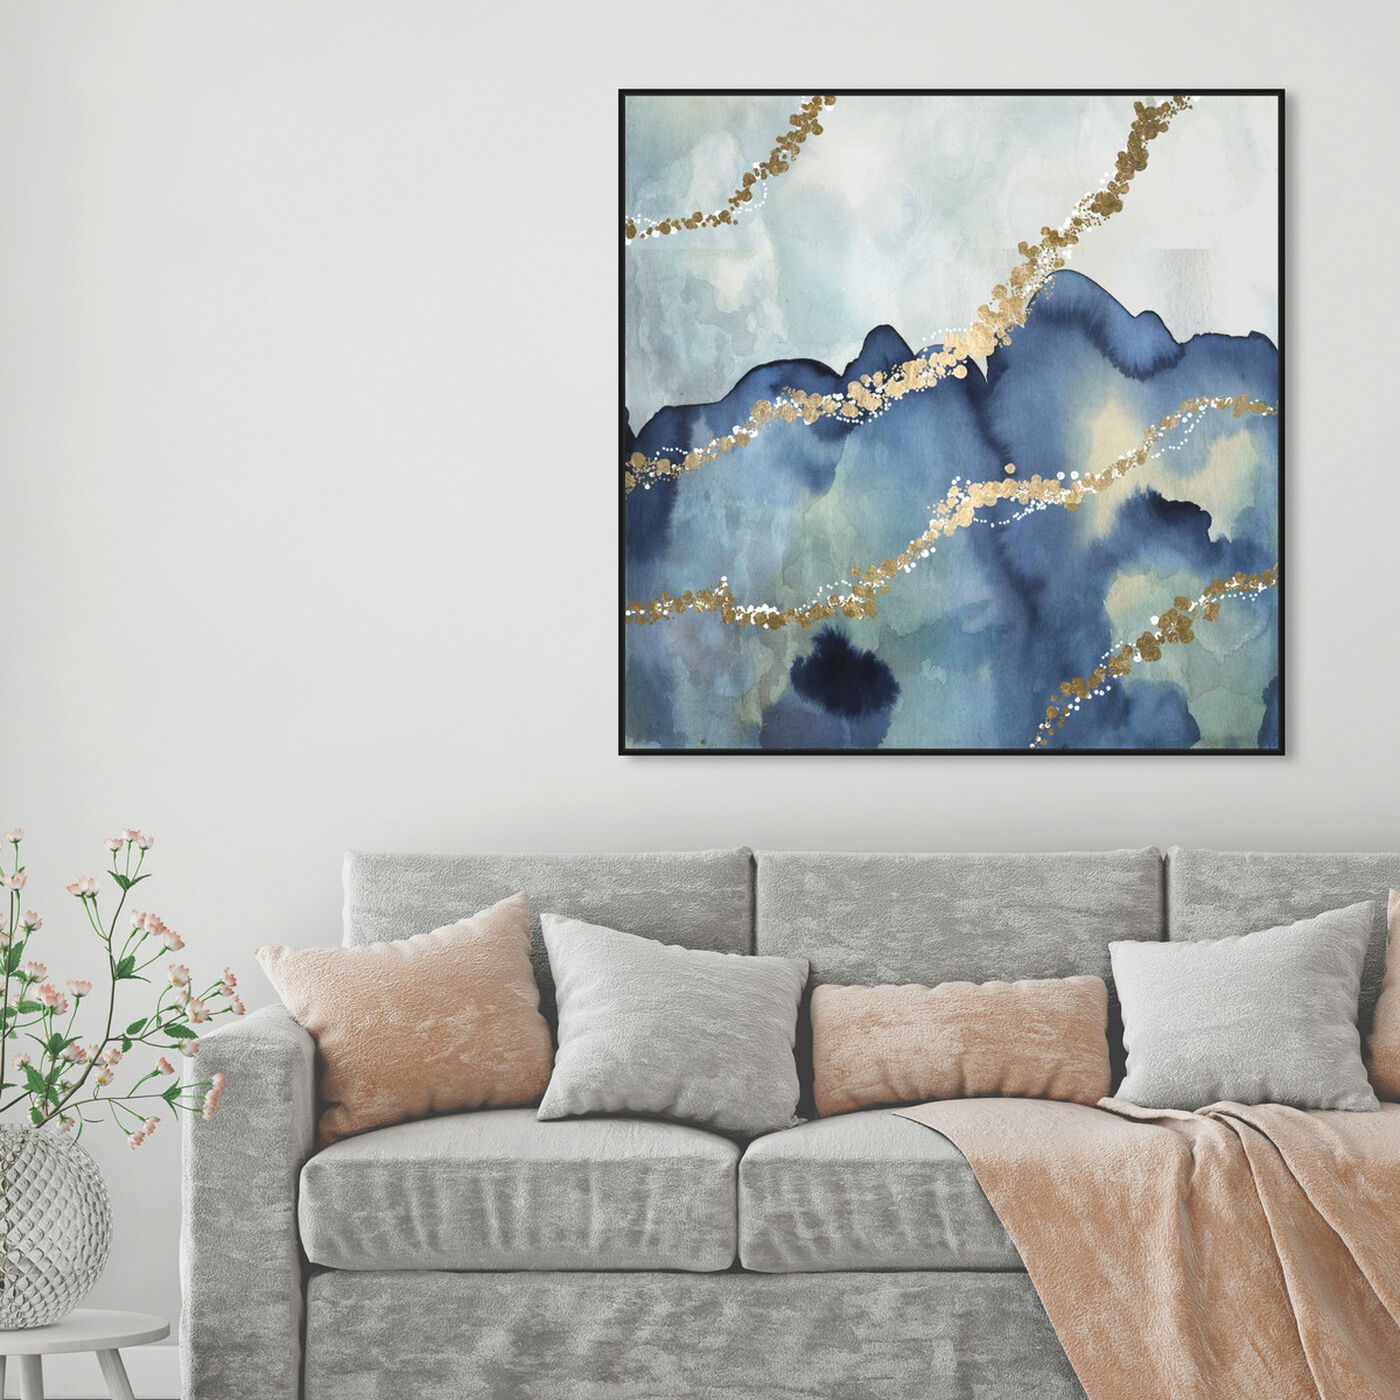 Hanging view of More than Love featuring abstract and watercolor art.